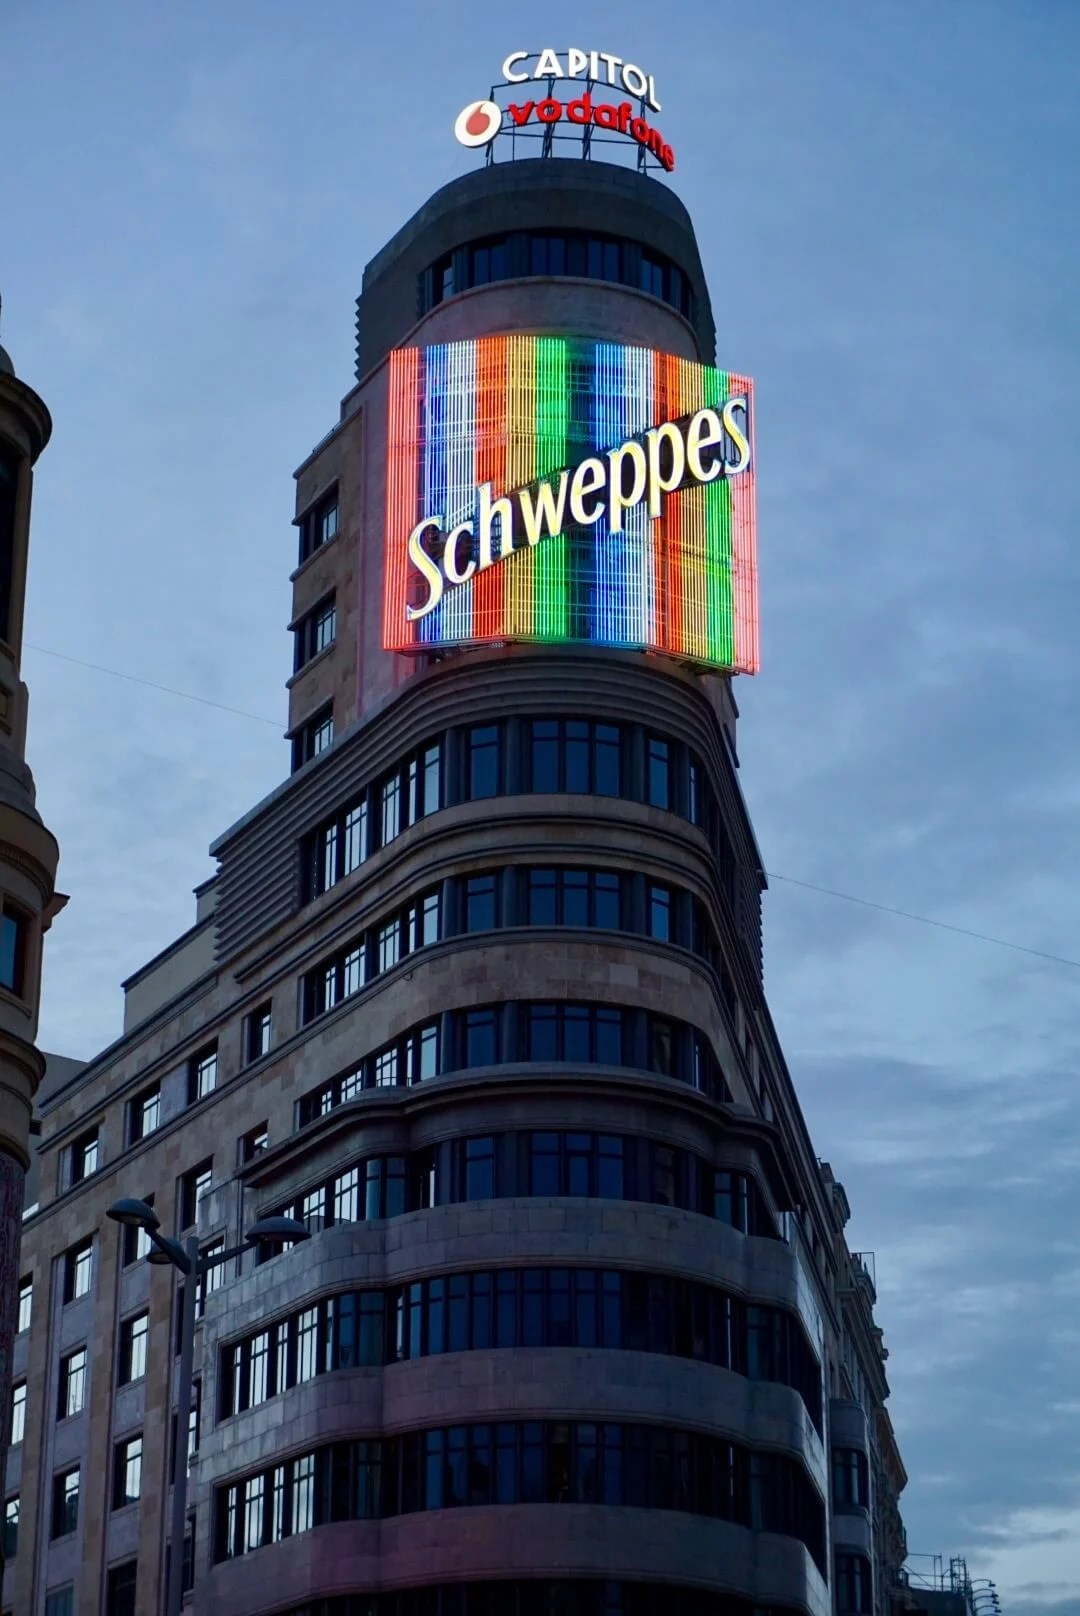 Schweppes Sign at Carrion Building